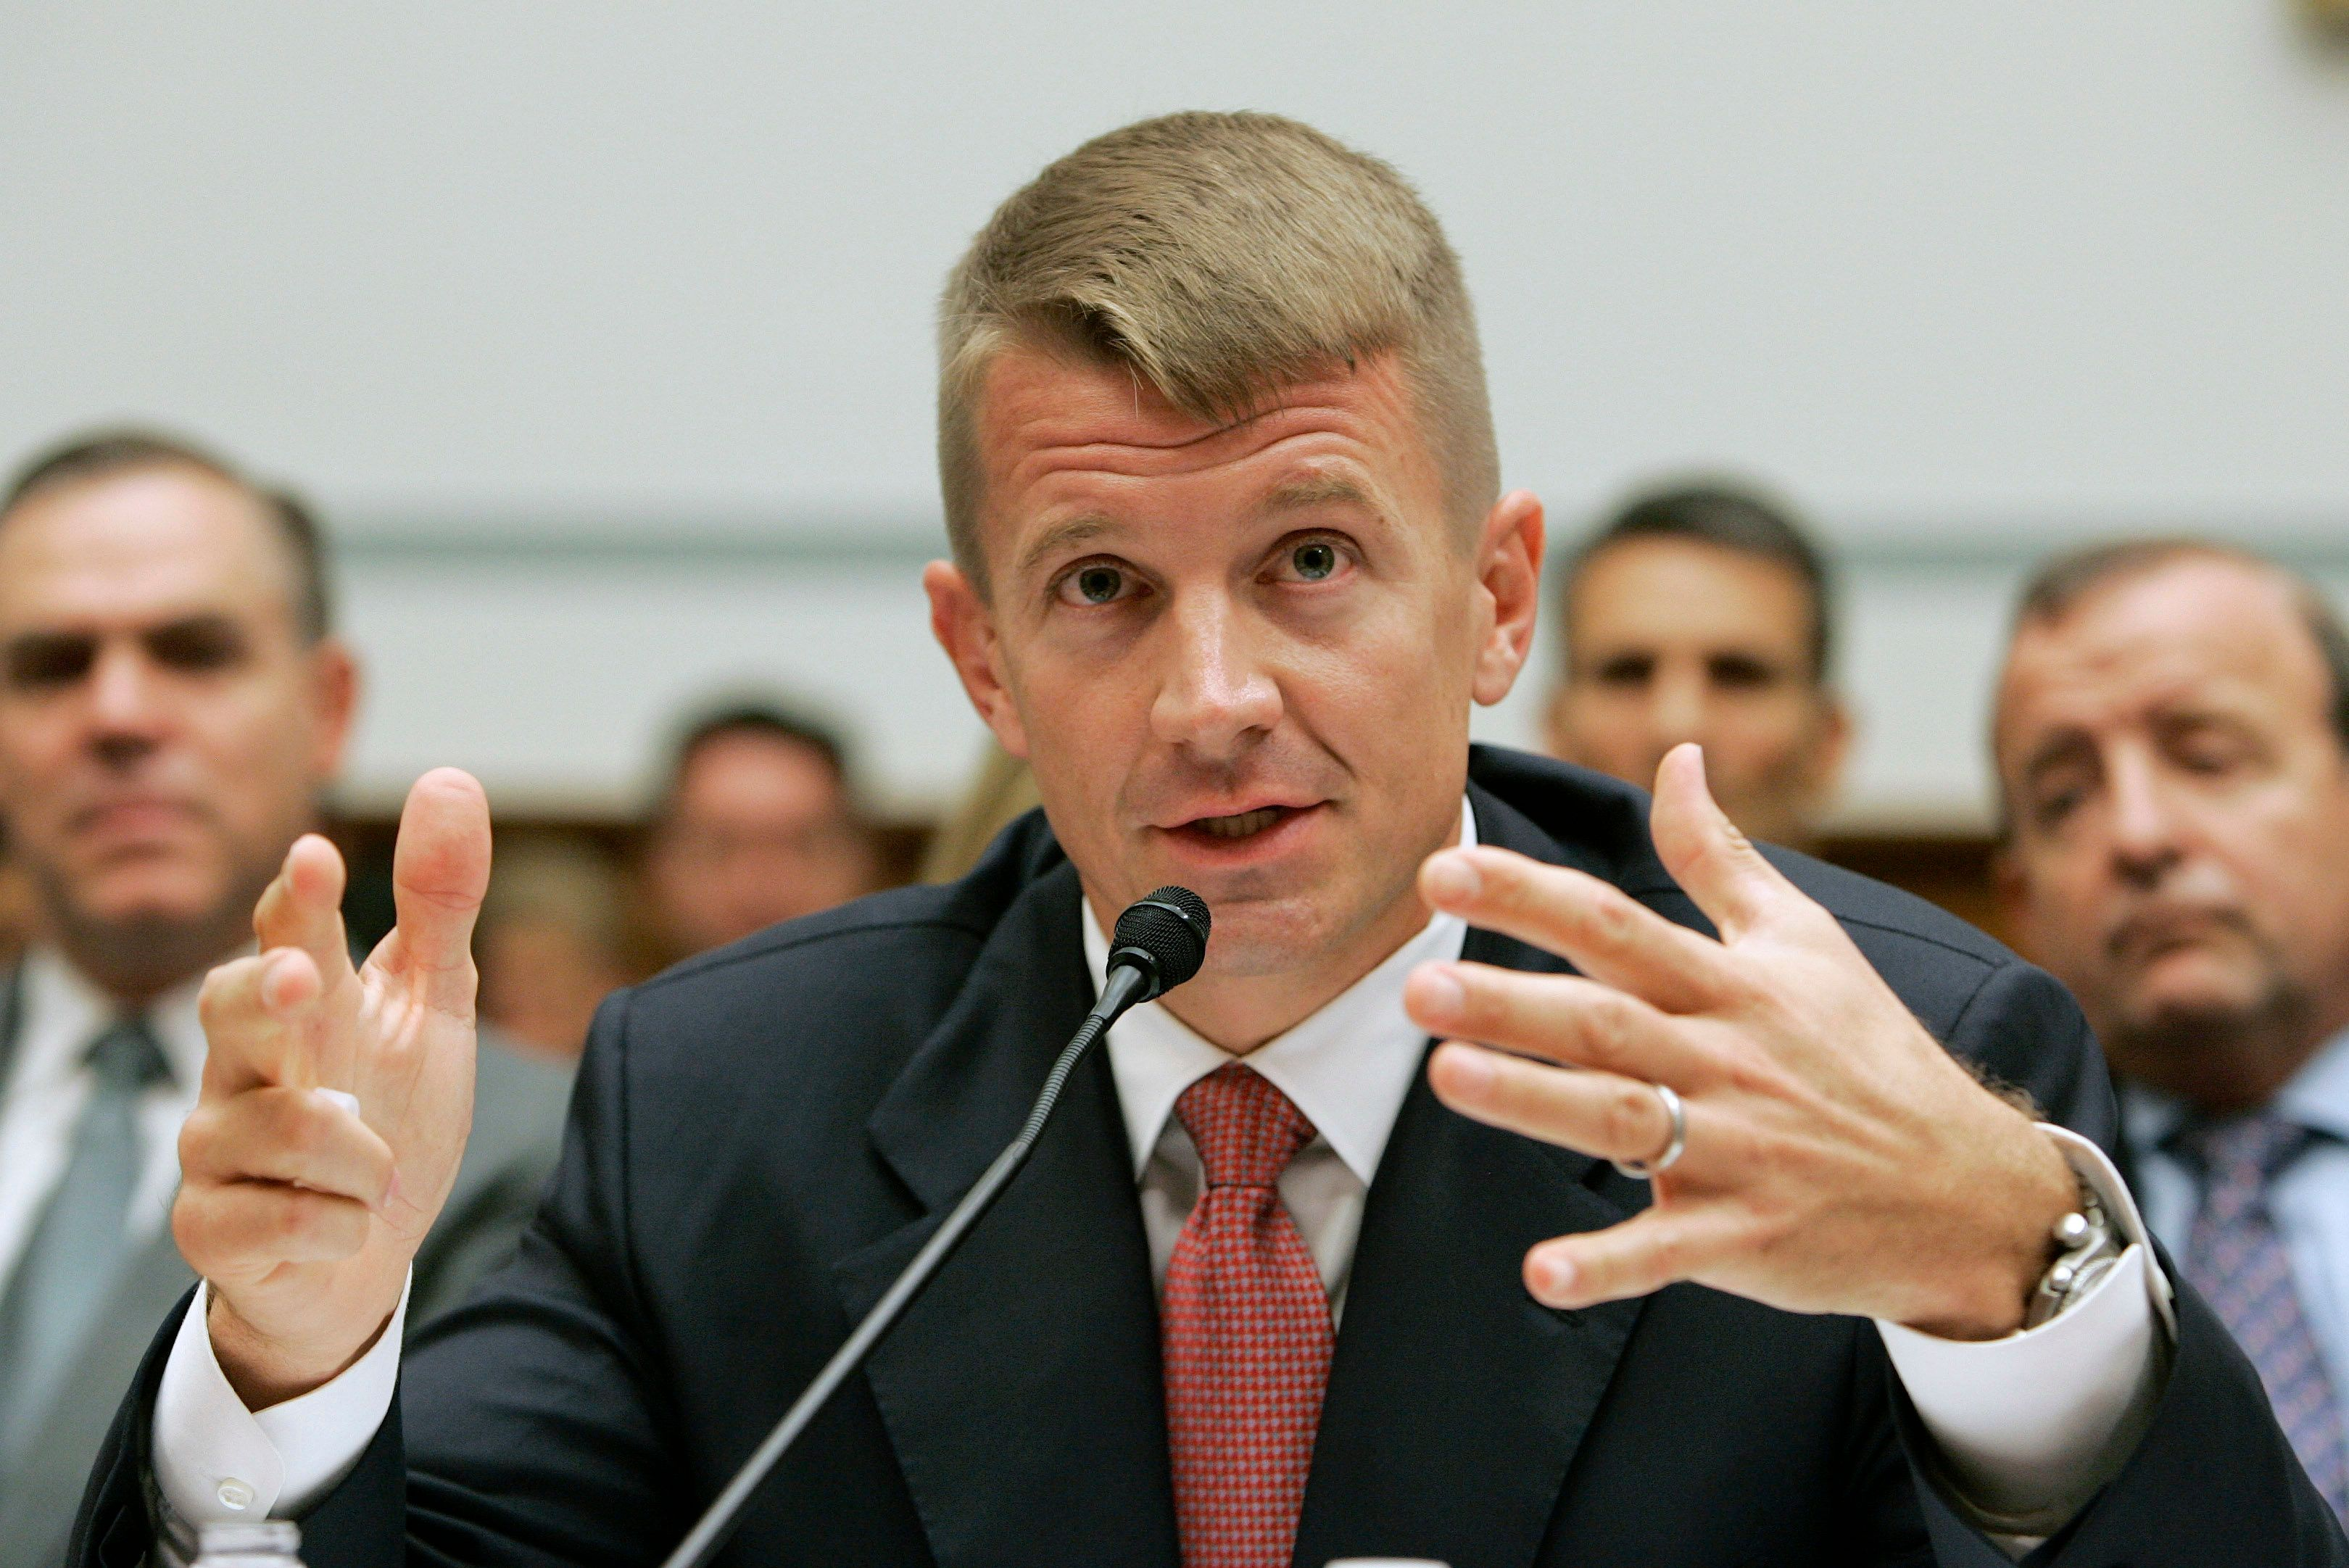 Blackwater USA Chief Executive Erik Prince testifies before the House Oversight and Government Reform Committee on security contracting in Iraq and Afghanistan on Capitol Hill in Washington October 2, 2007.         REUTERS/Larry Downing    (UNITED STATES)